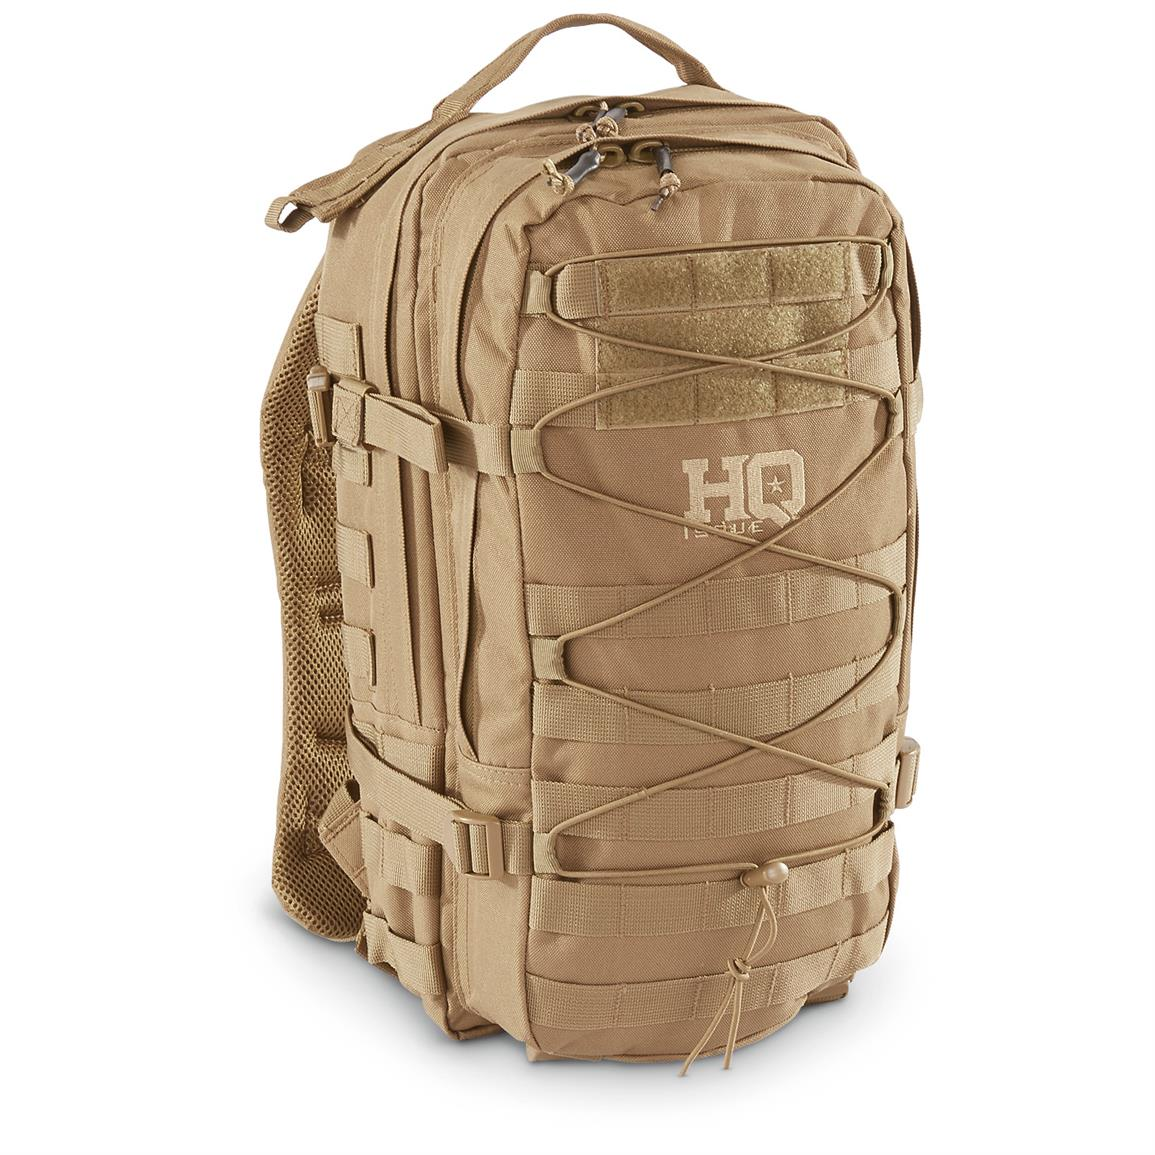 HQ ISSUE Bungee-style Day Pack, Coyote Tan